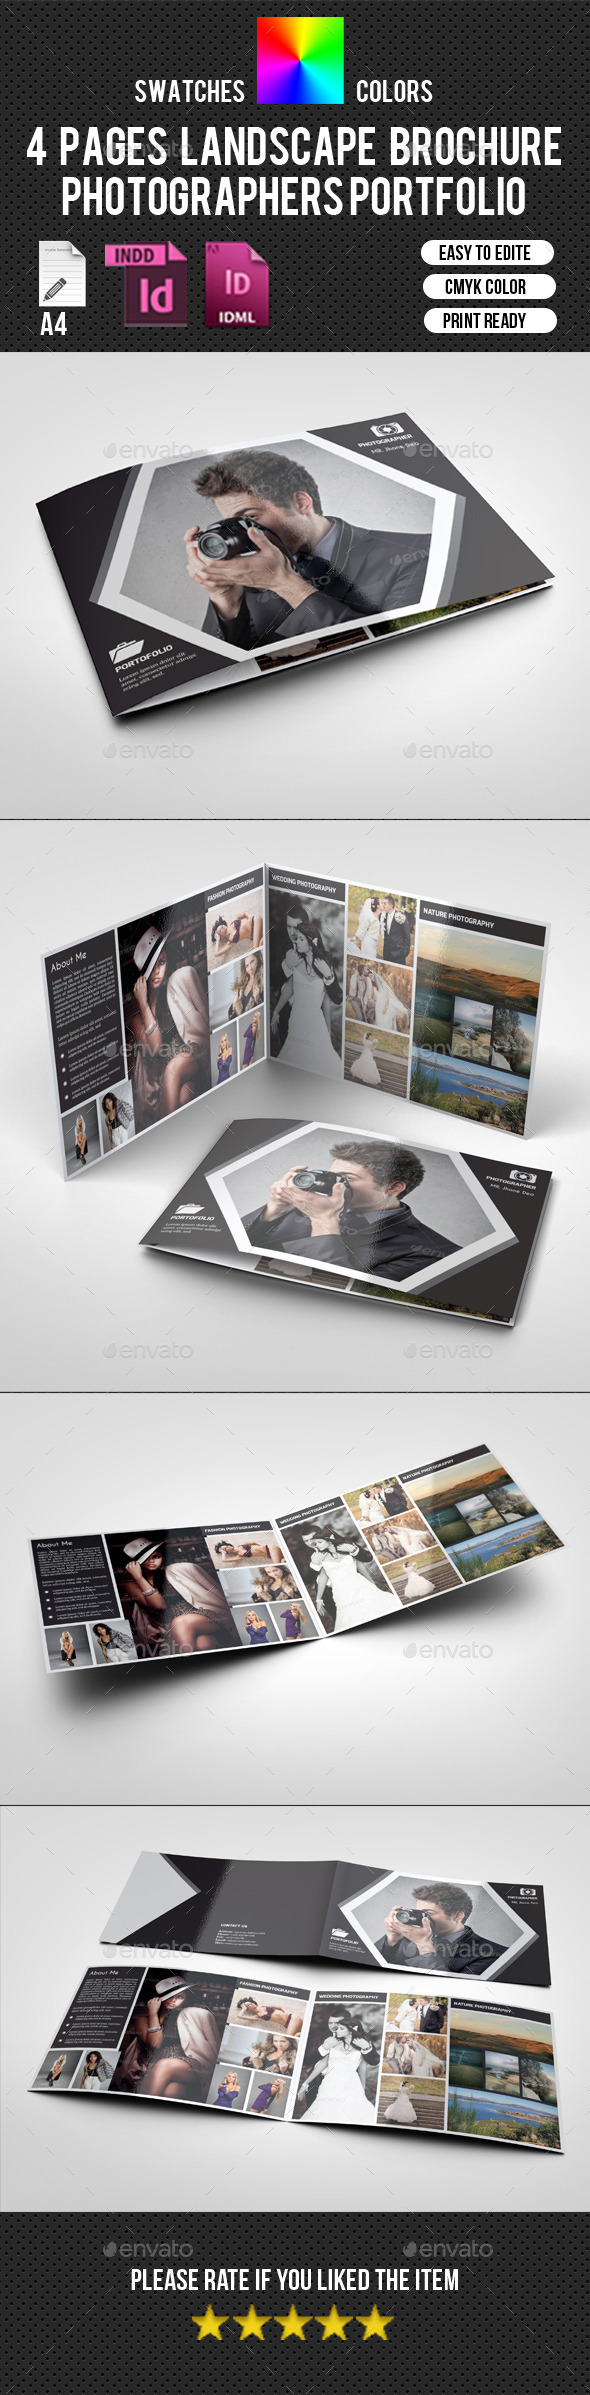 4 Pages Landscape Photography Brochure-V197 - Corporate Brochures